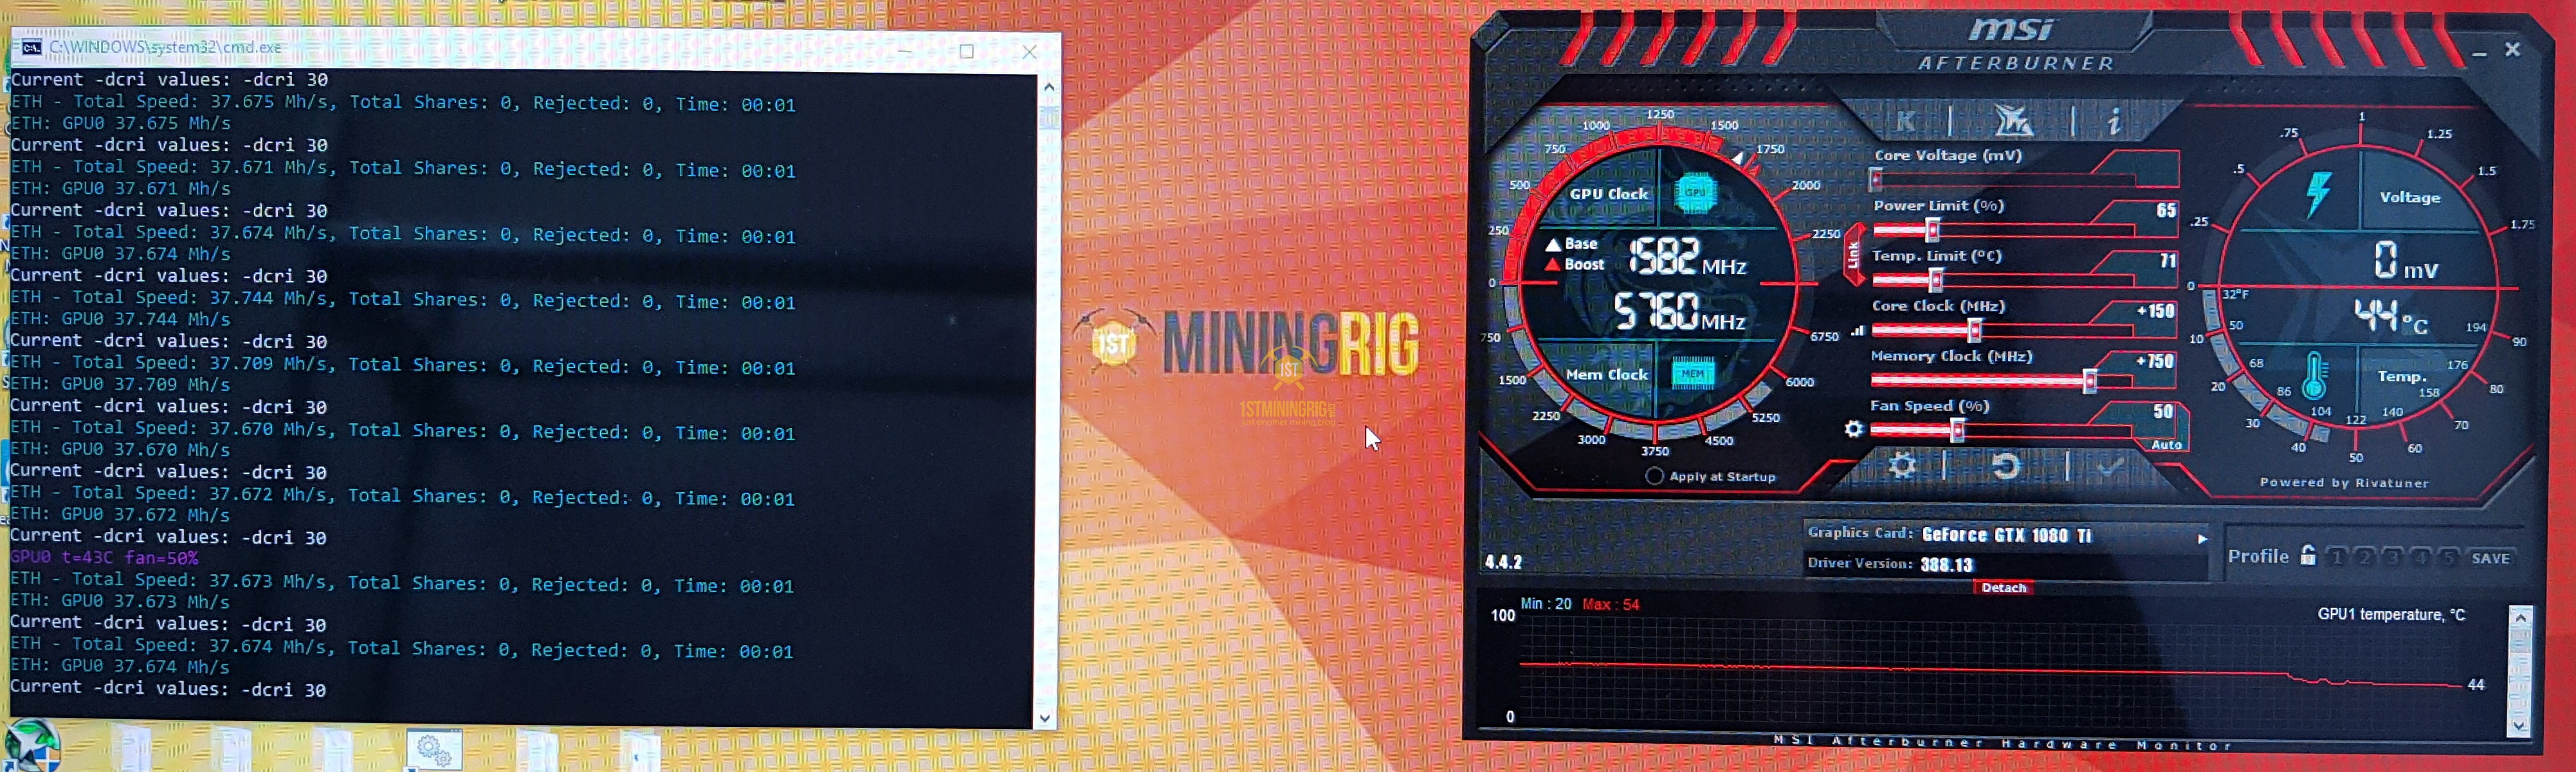 Msi Rx 470 Ethereum Miner Best Miner To Buy For Litecoin